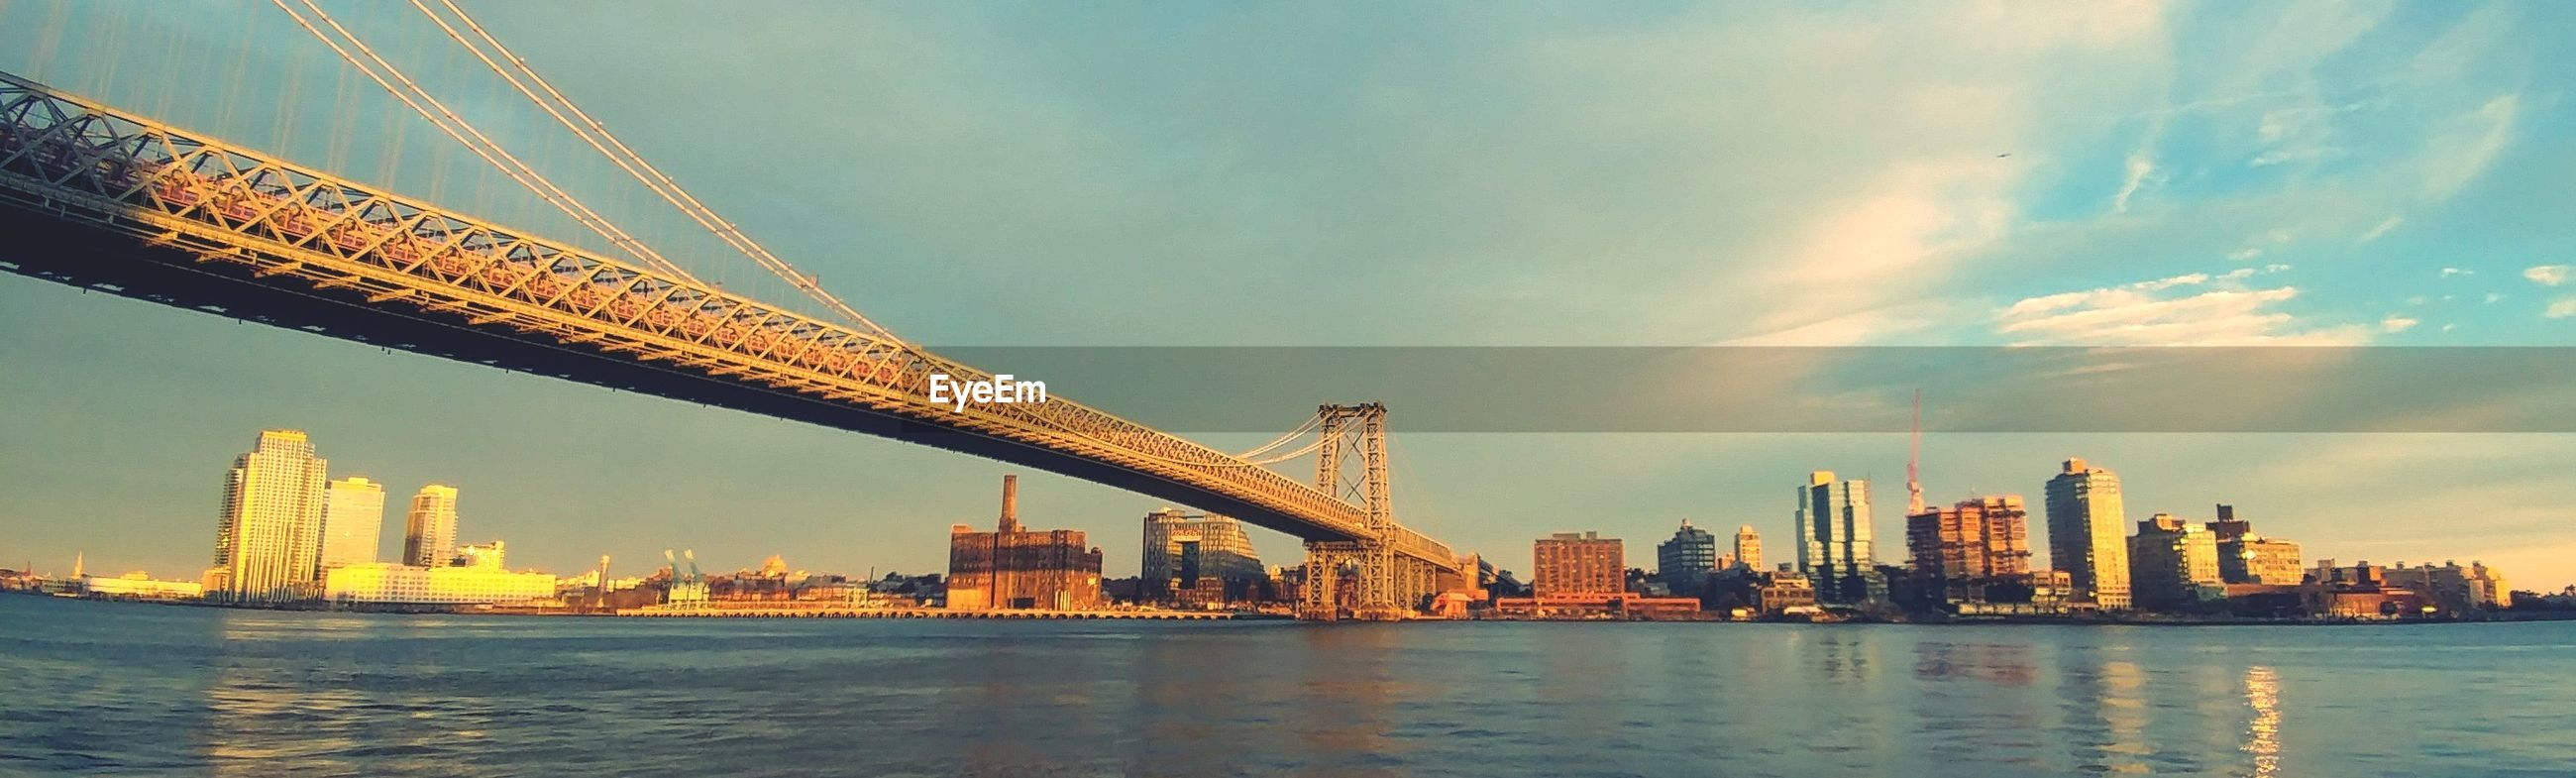 Panoramic view of bridge over river against sky in city during sunset